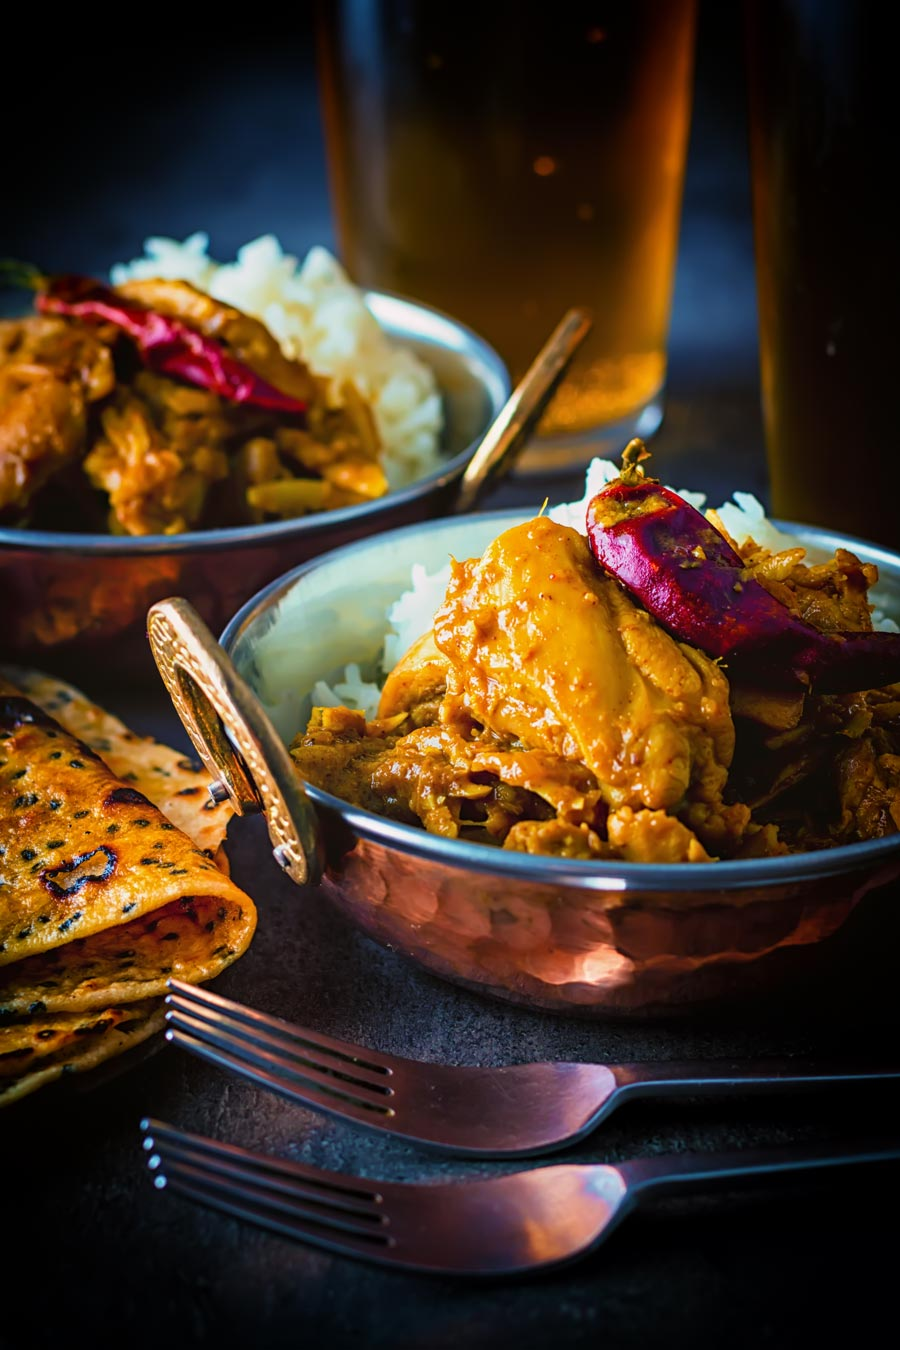 Heady with Cloves & Cinnamon this Fragrant Indian Coconut Chicken Curry packs a punch of chili to get the blood racing, which of course you could tone down